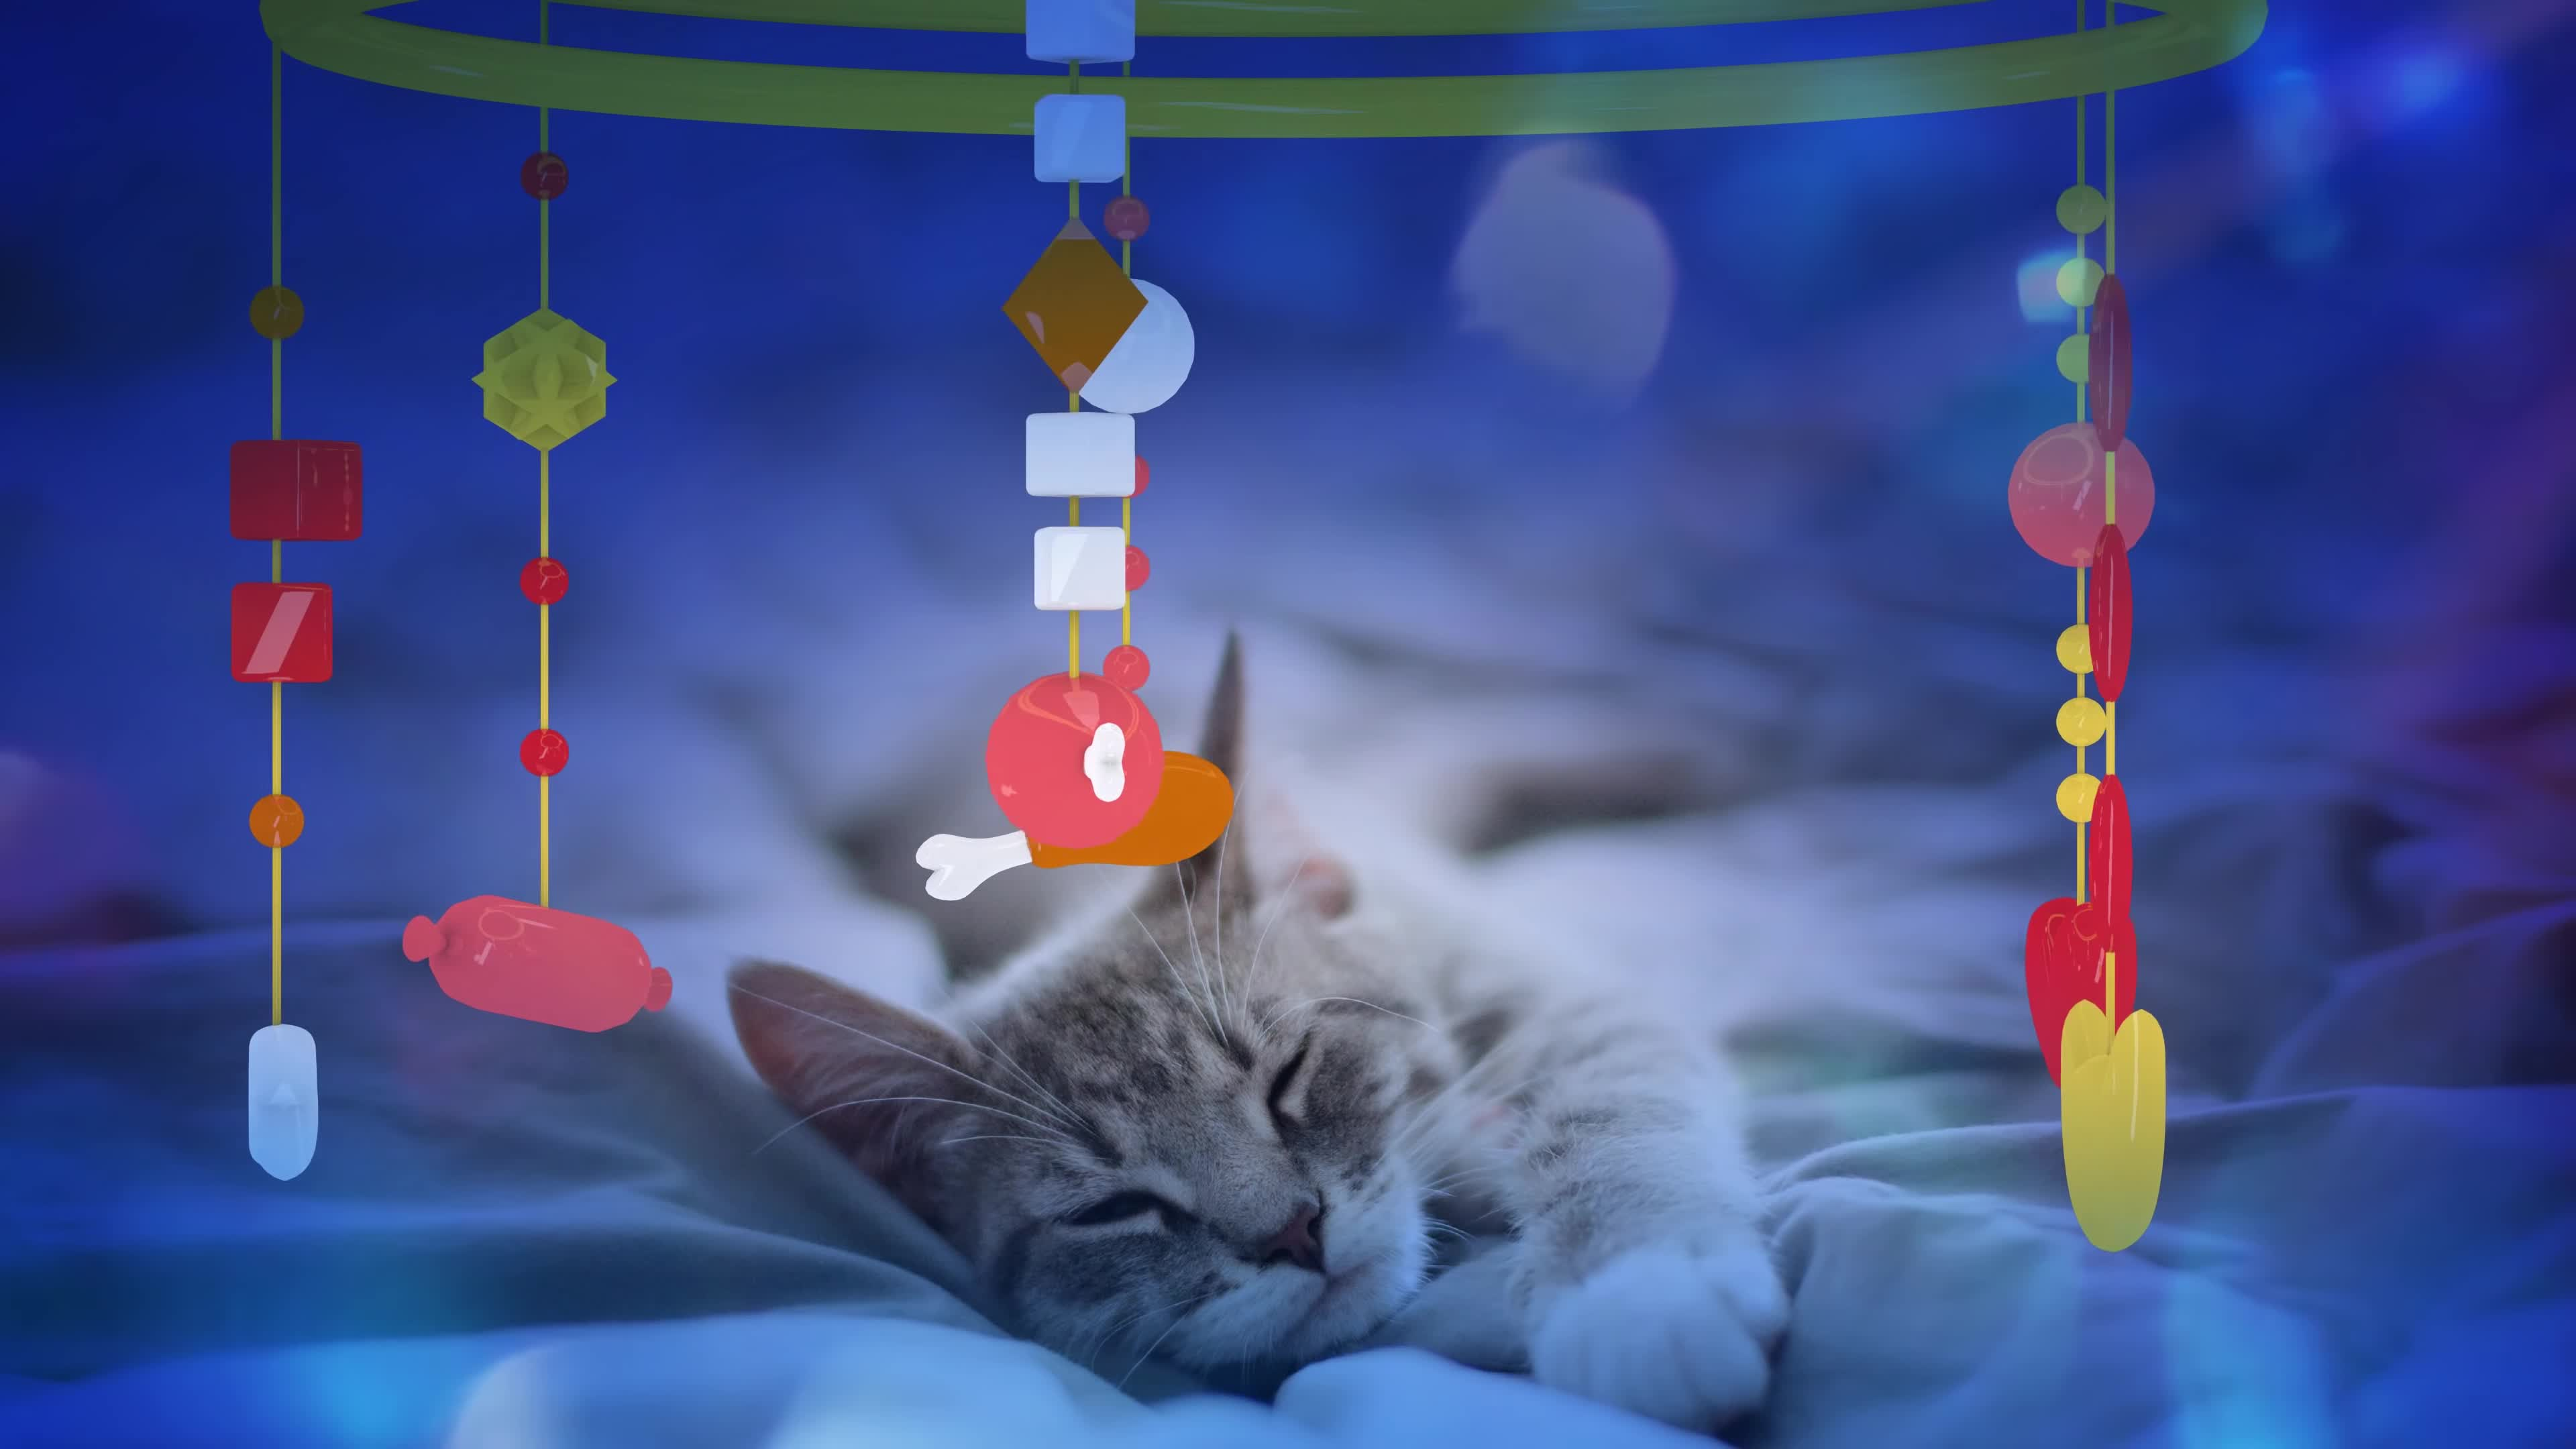 CAT MUSIC LULLABY FOR CAT OR KITTEN SOOTHING MUSIC 1 HOUR 4 K